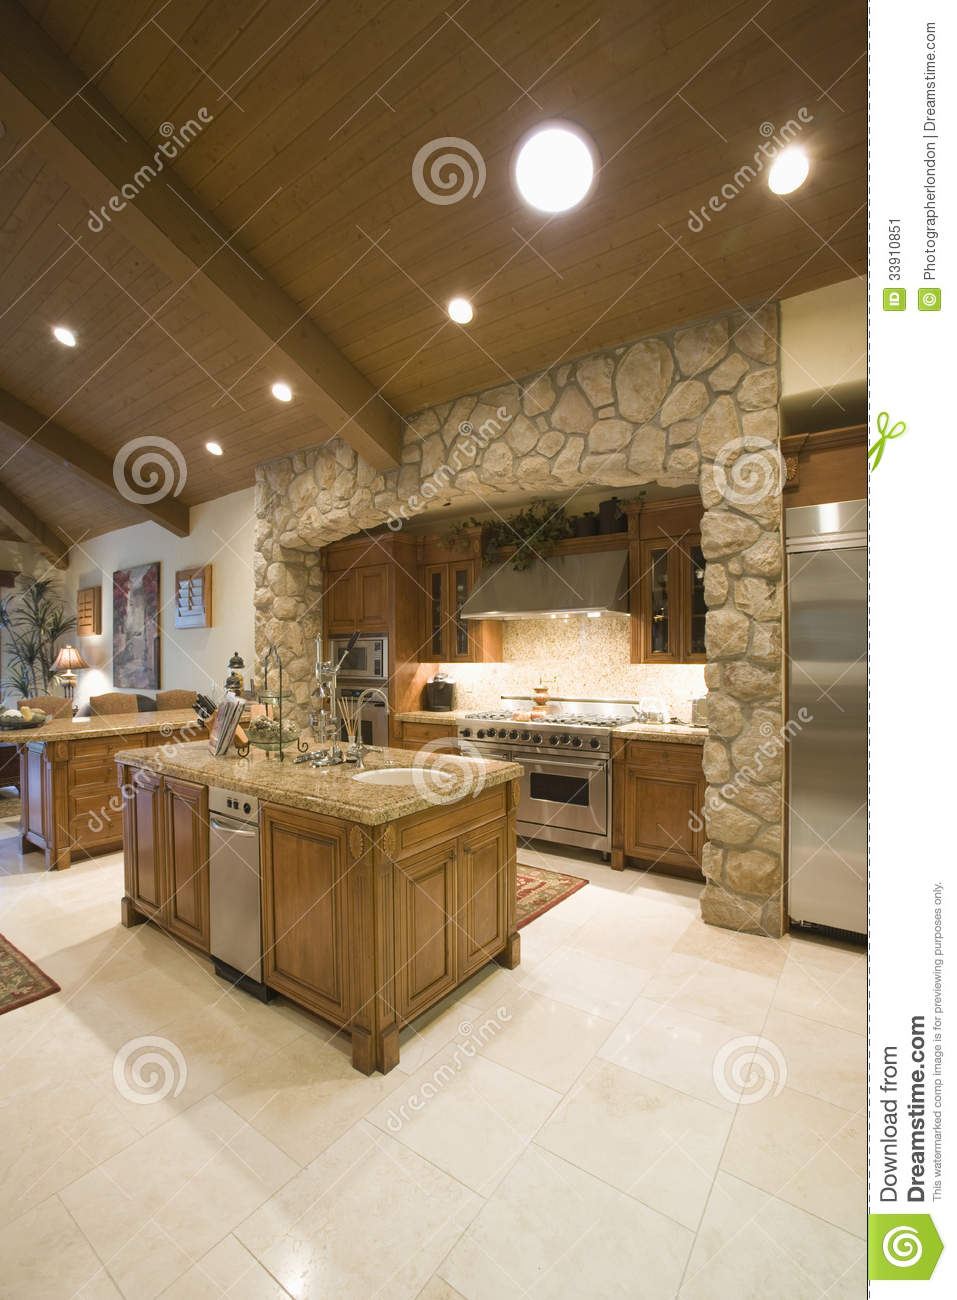 kitchen spotlights retro set surrounded with on ceiling stock image of